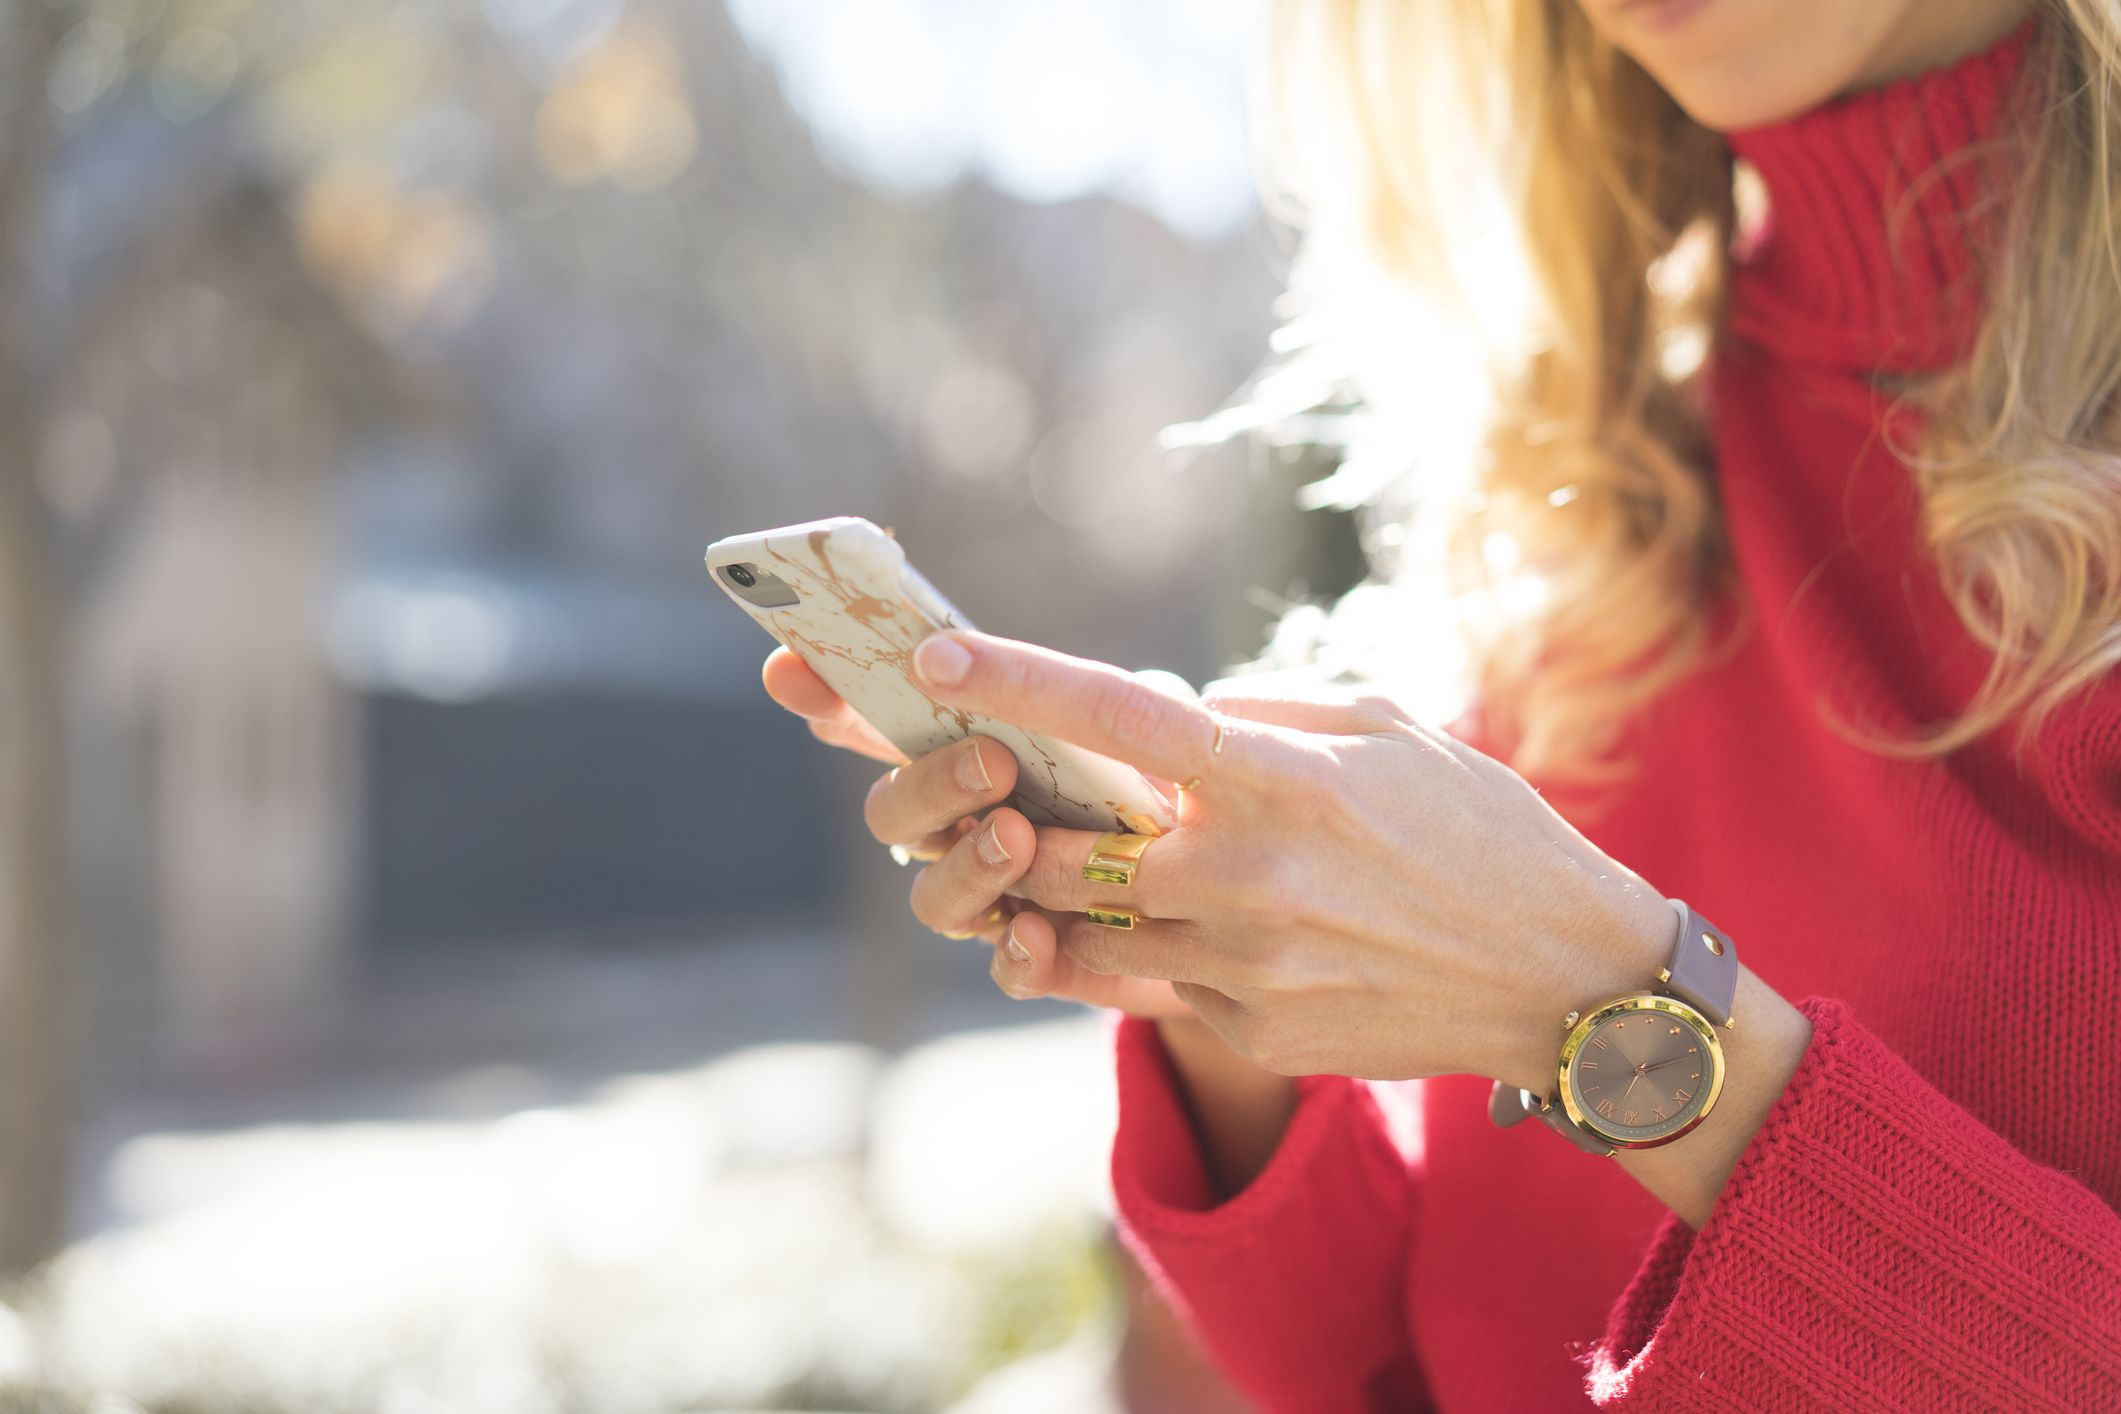 No, Double Texting Isn't That Bad, But Ask Yourself Why You're Doing It